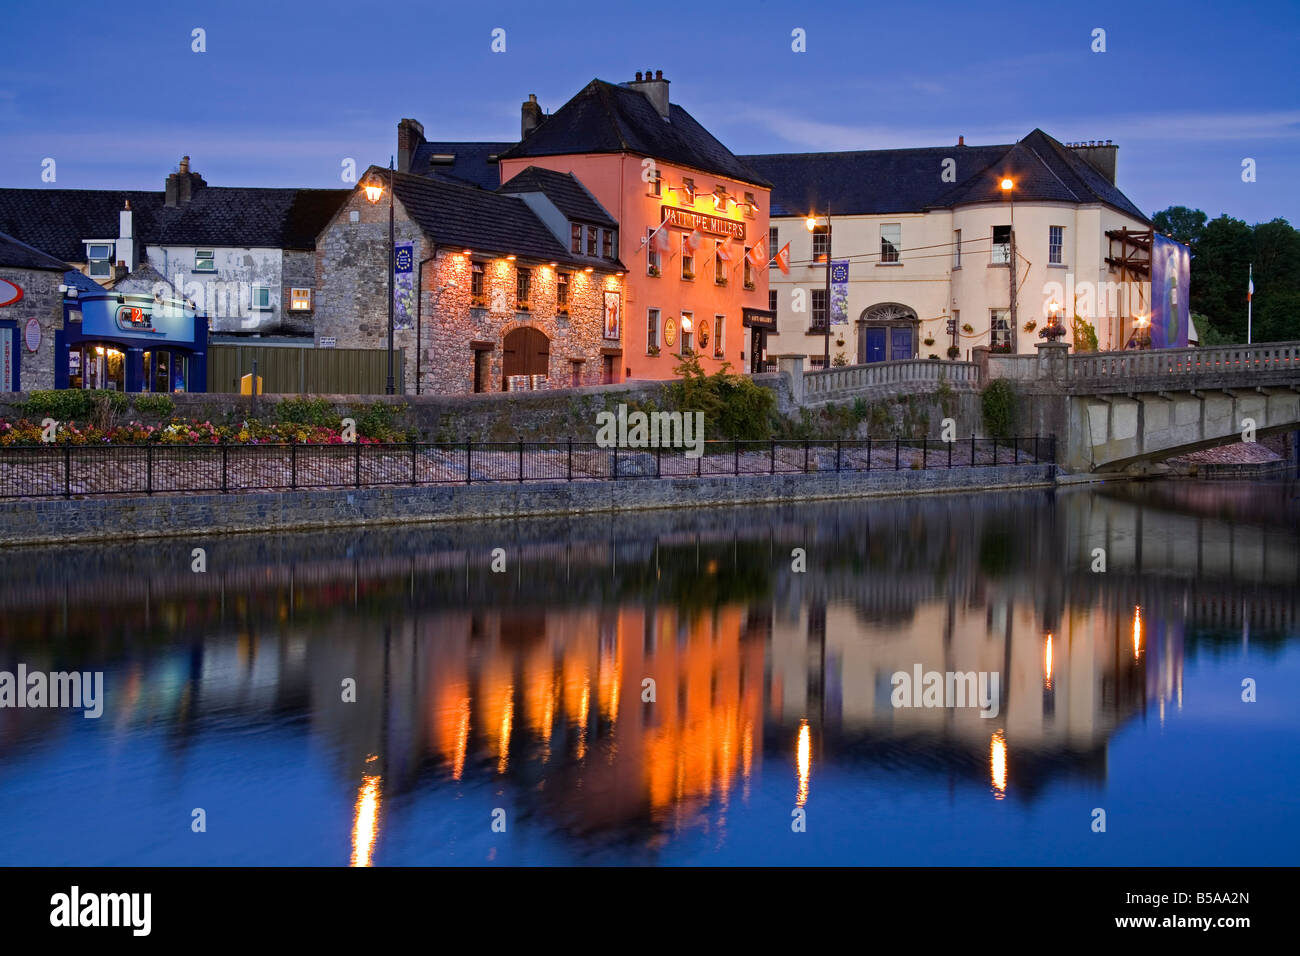 John's Quay and River Nore, Kilkenny City, County Kilkenny, Leinster, Republic of Ireland, Europe - Stock Image